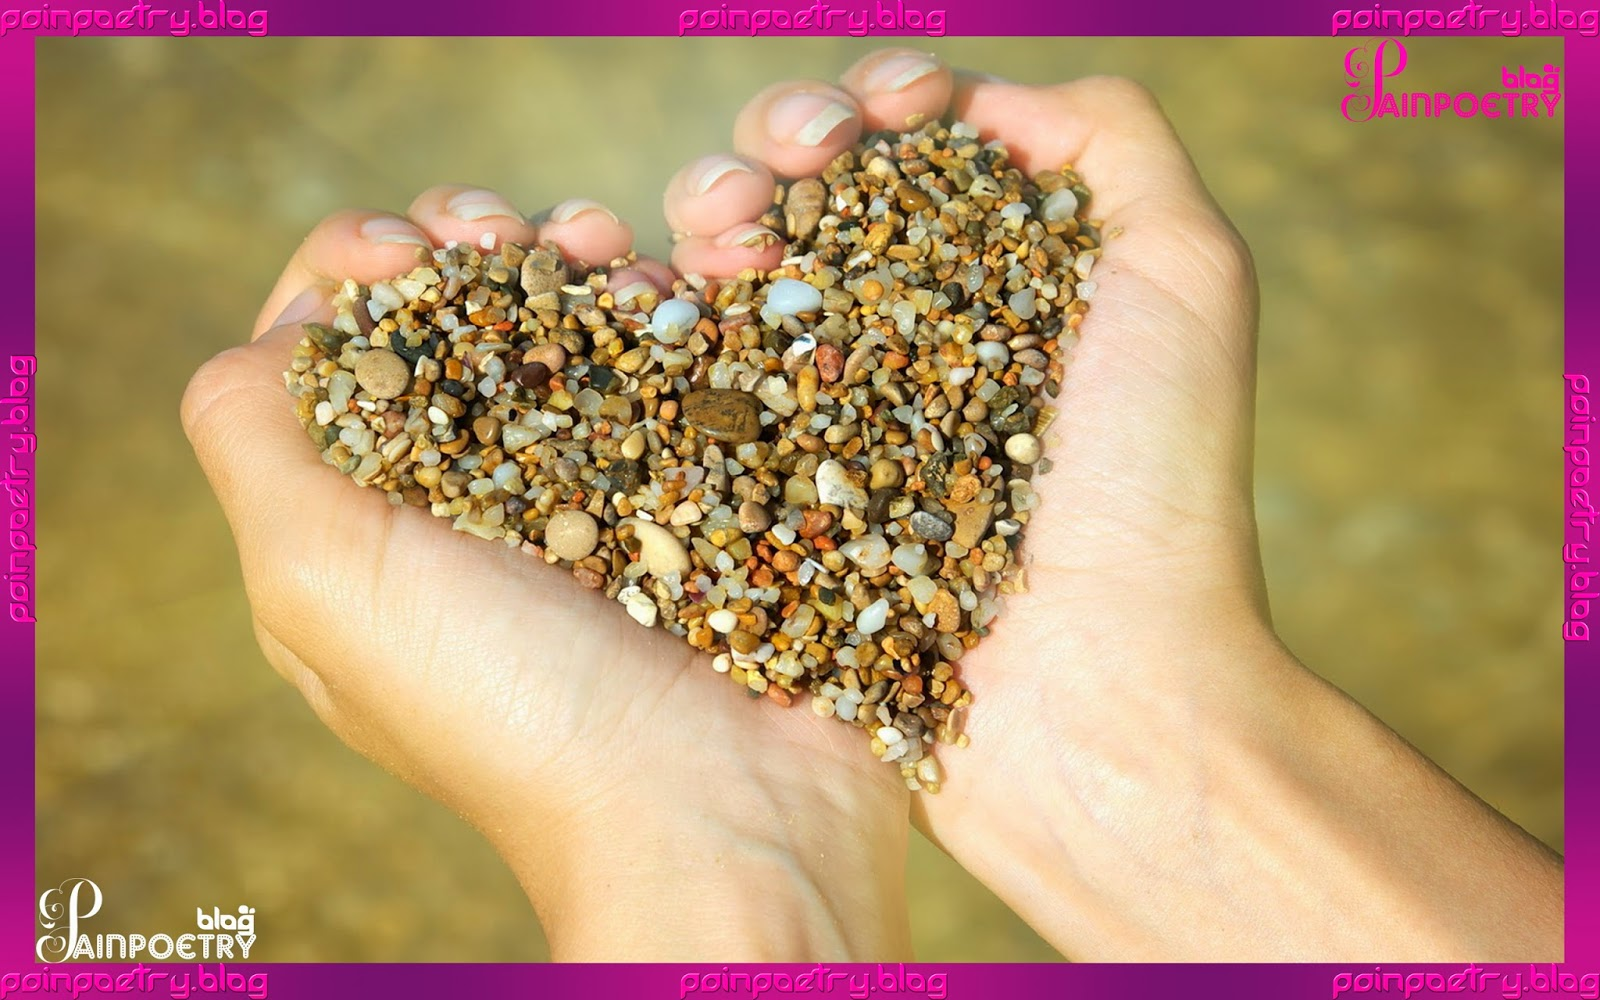 Love-Wallpaper-With-Small-Stones-On-Hands-Image-HD